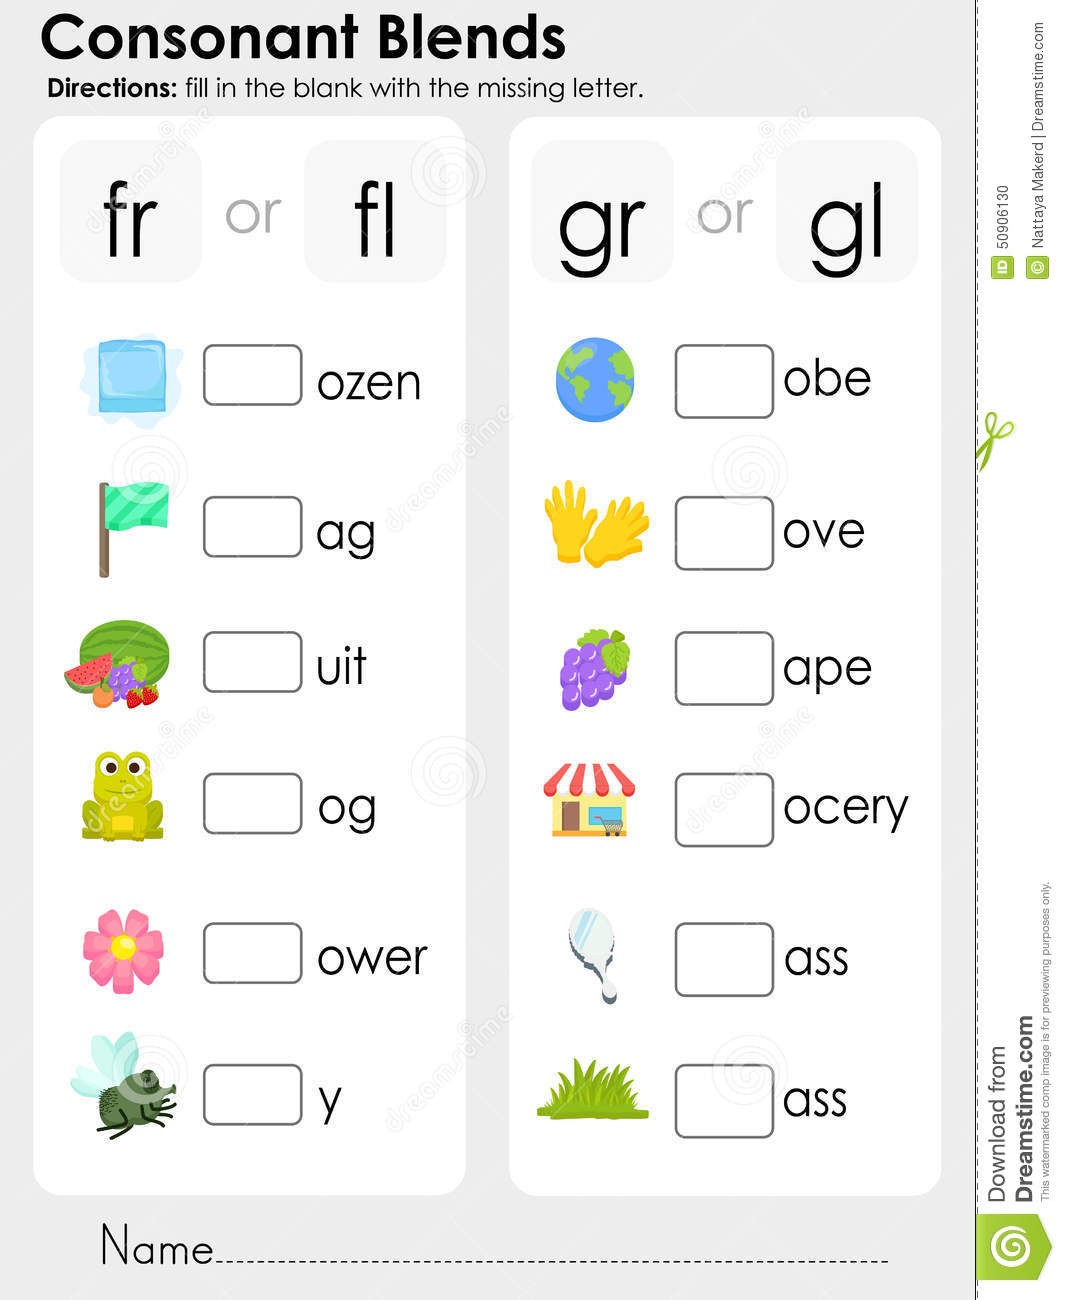 Printables Blends Worksheets worksheet consonant letters worksheets noconformity free blends missing letter for education stock education